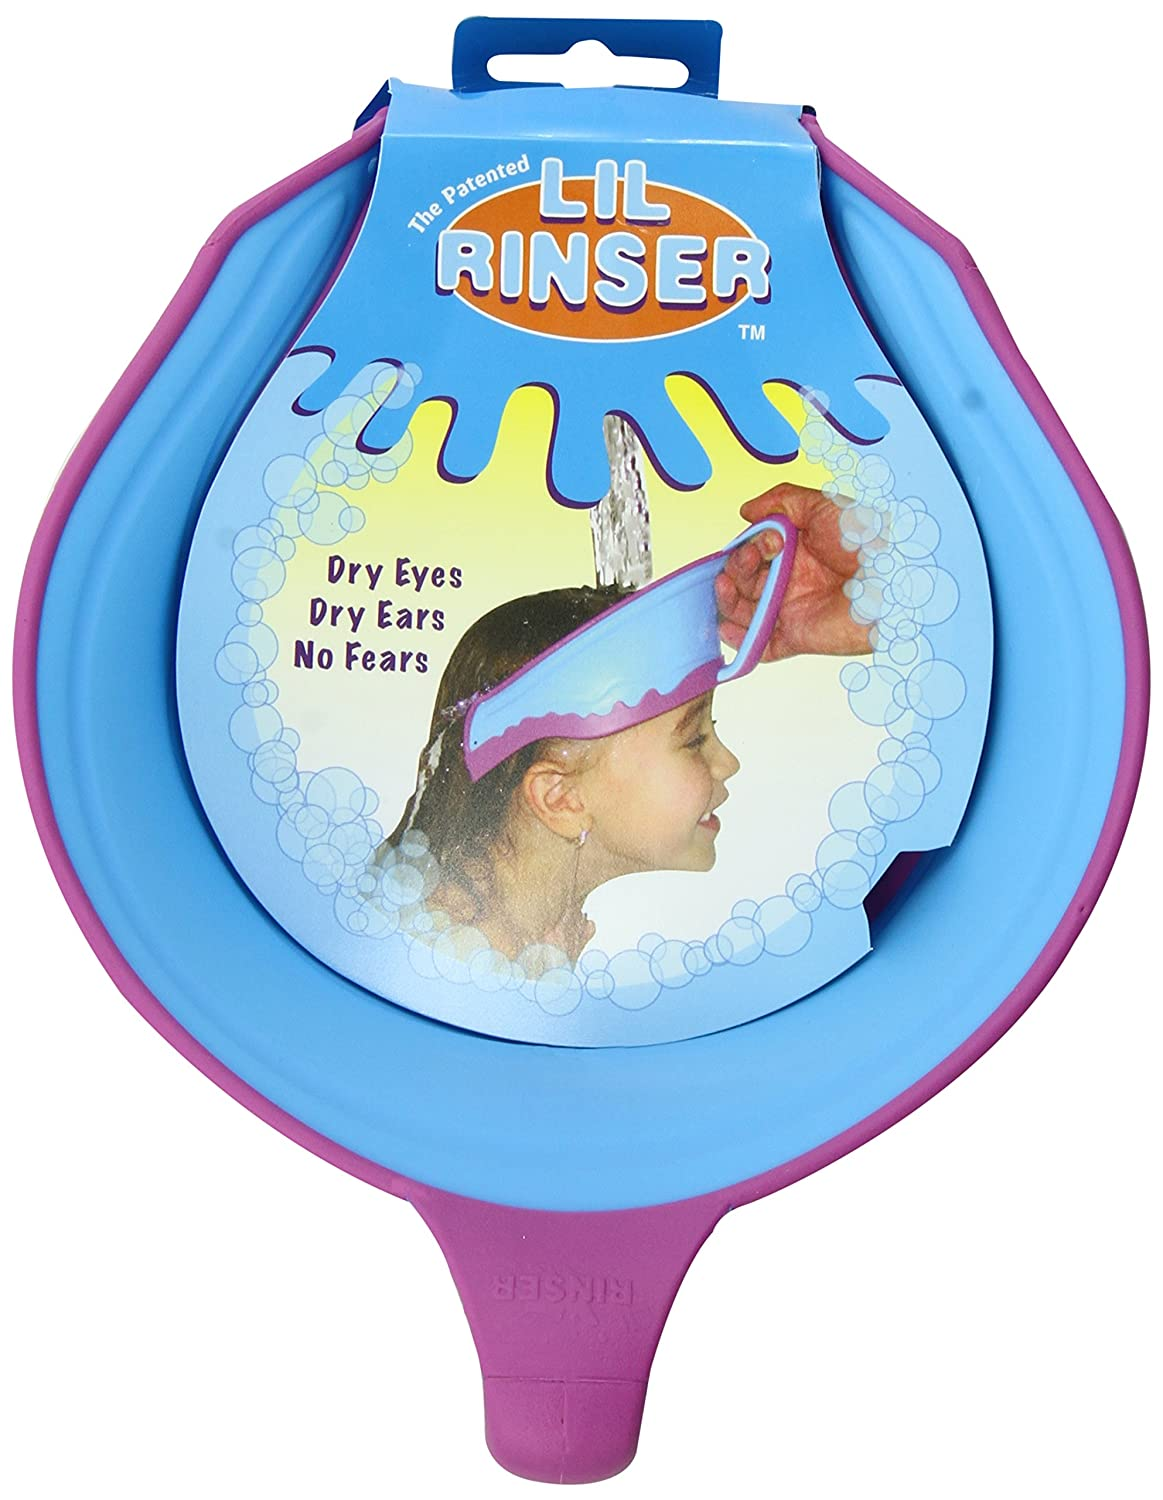 Lil Rinser Splashguard in Blue and Pink BLUE PINK